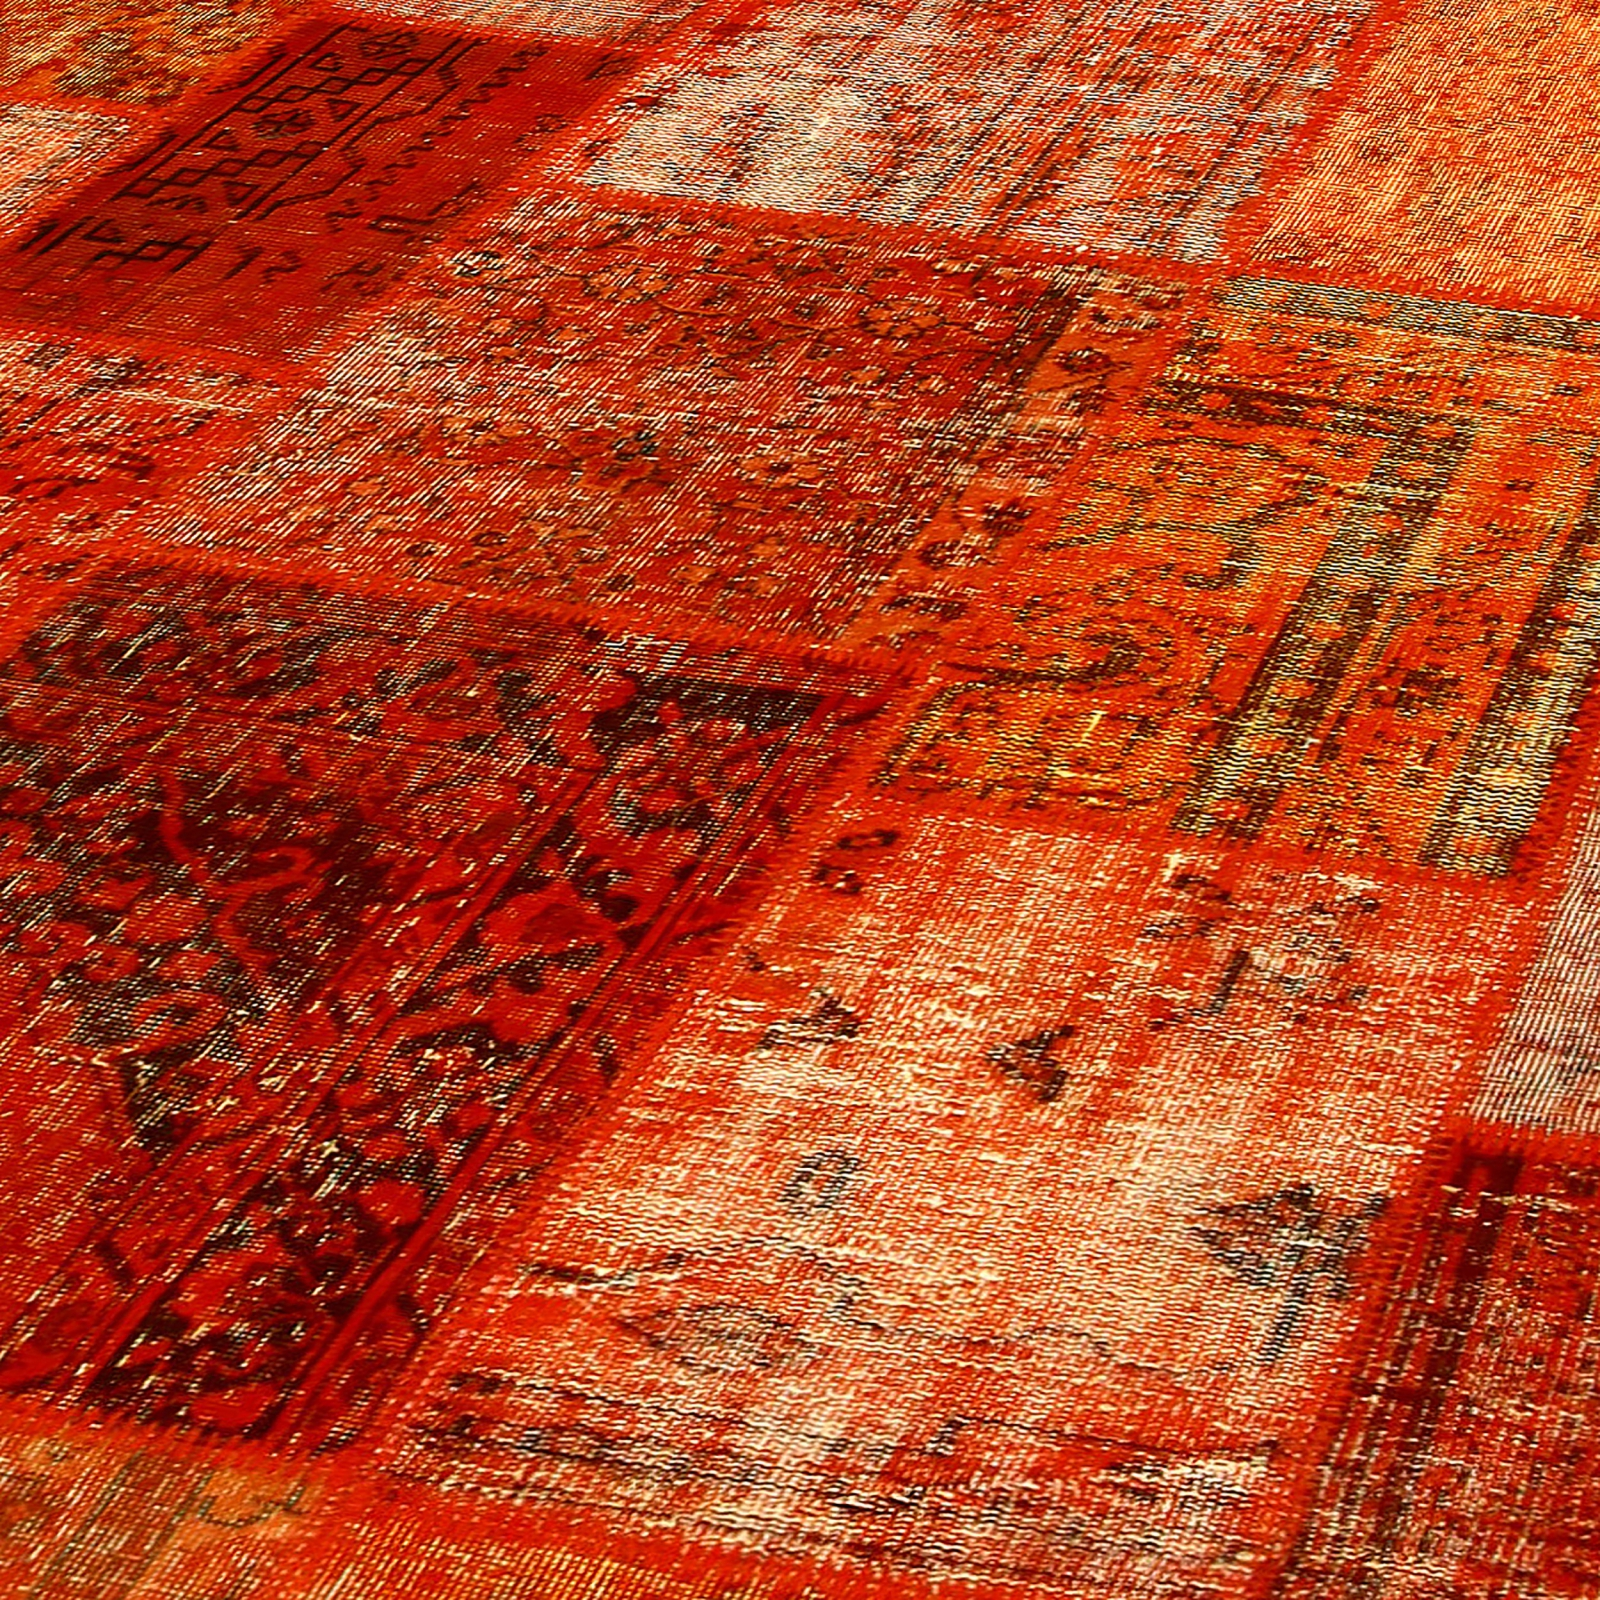 Teppich orange  Orange vintage patchwork flicken teppich (430x300cm)